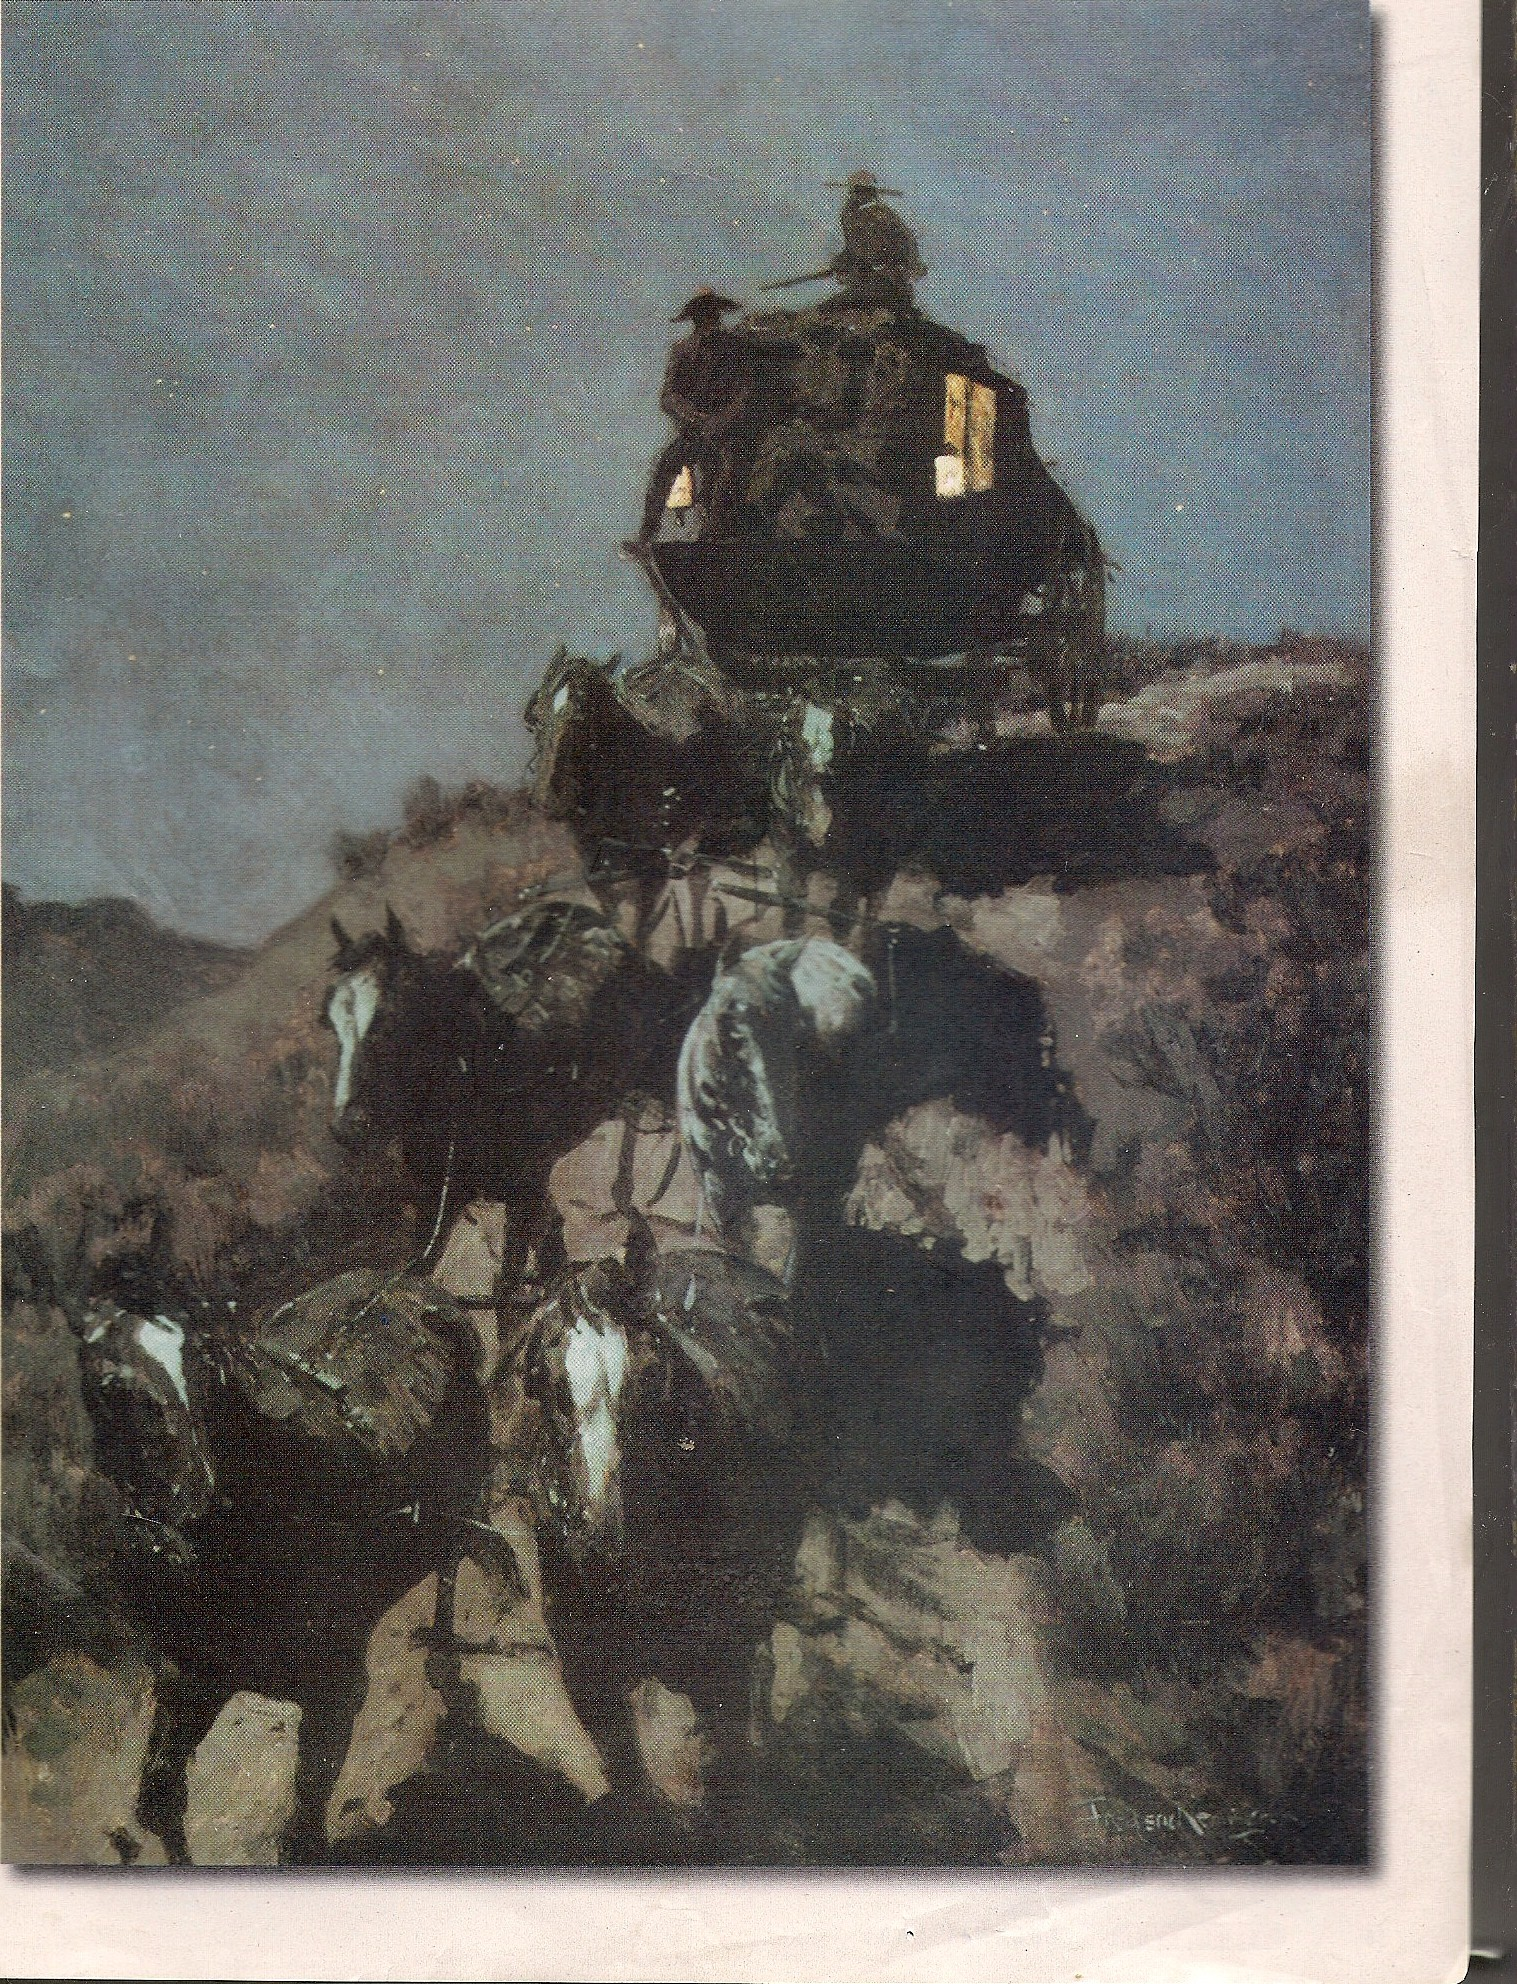 Frederic Remington 1902 The Old Stage Coach of the Plains.